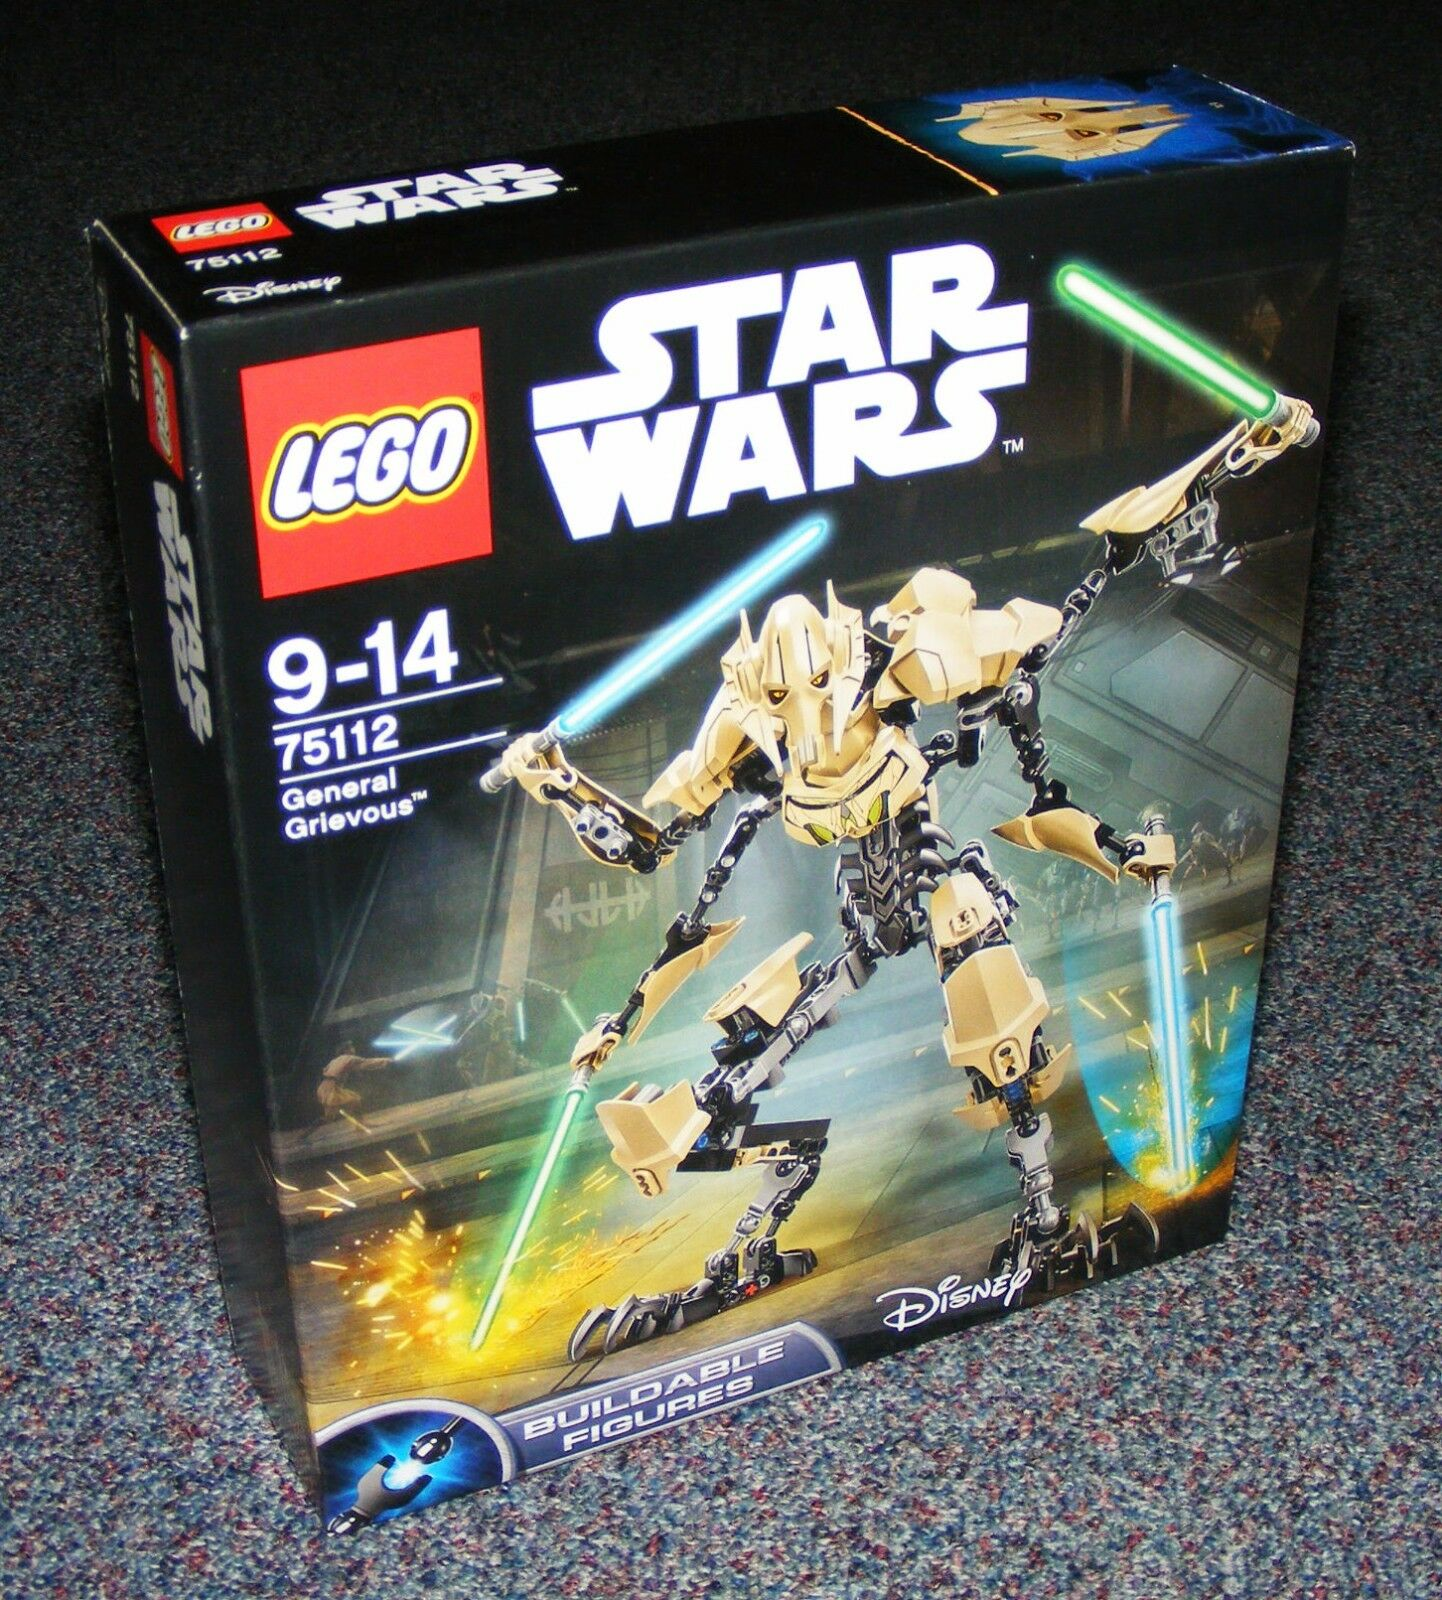 STAR WARS LEGO 75112 75112 75112 GENERAL GRIEVOUS BUILDABLE FIGURE BRAND NEW SEALED 331dae